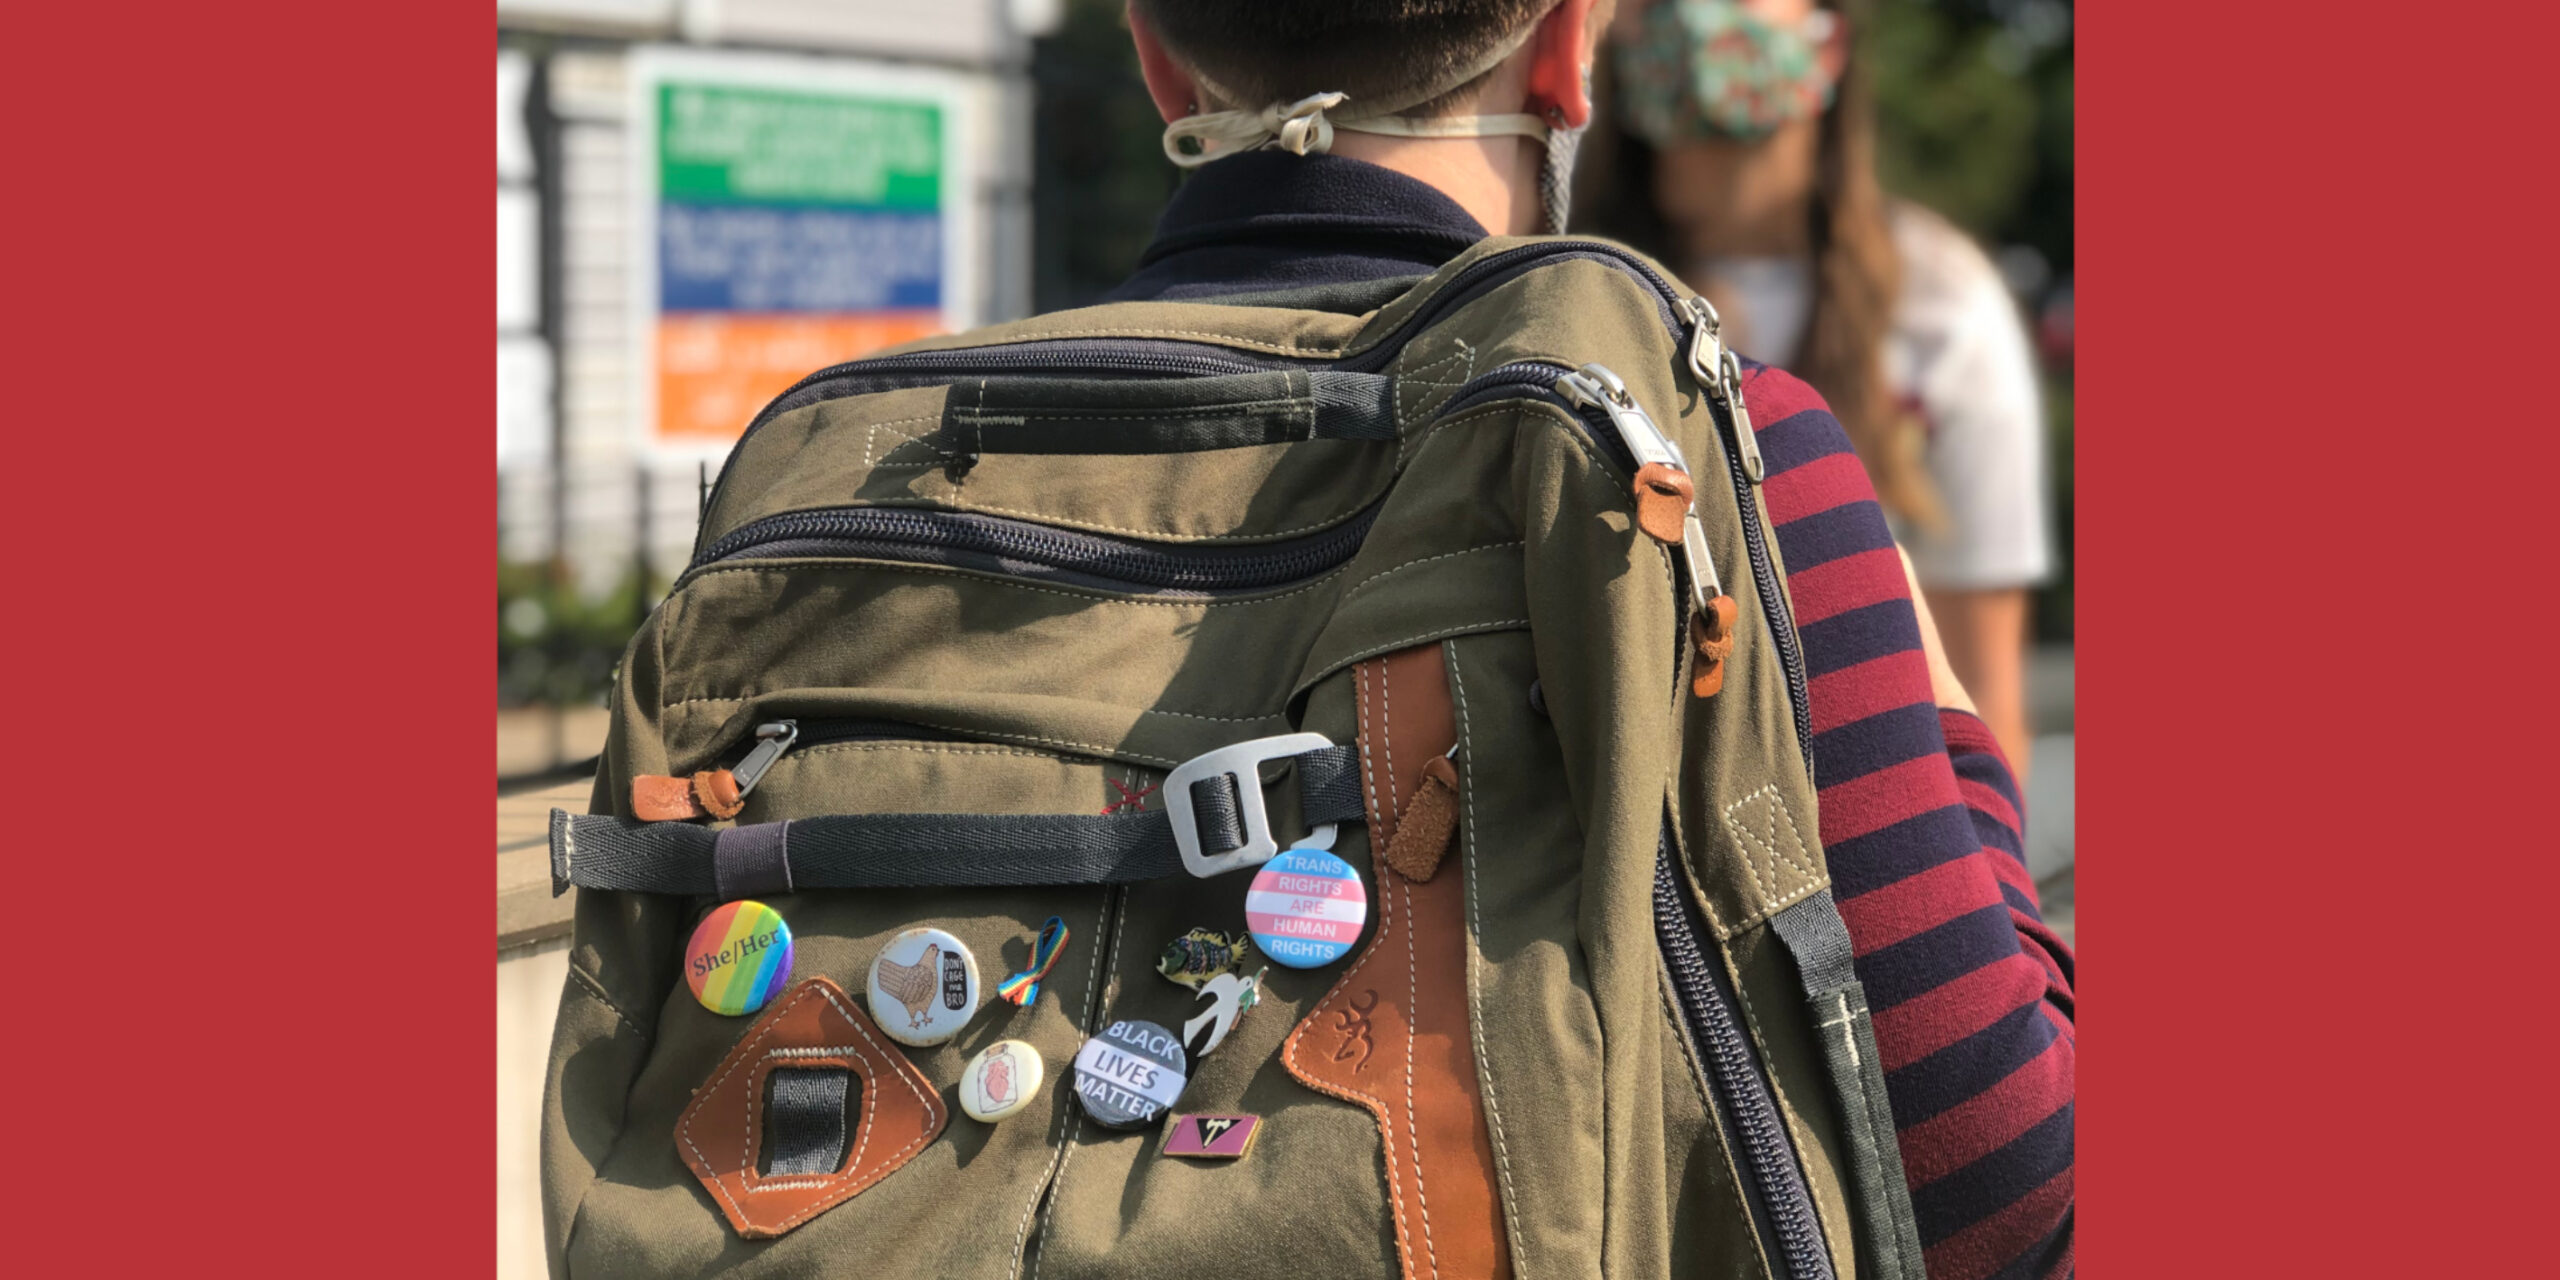 Backpack with pronoun pins on it